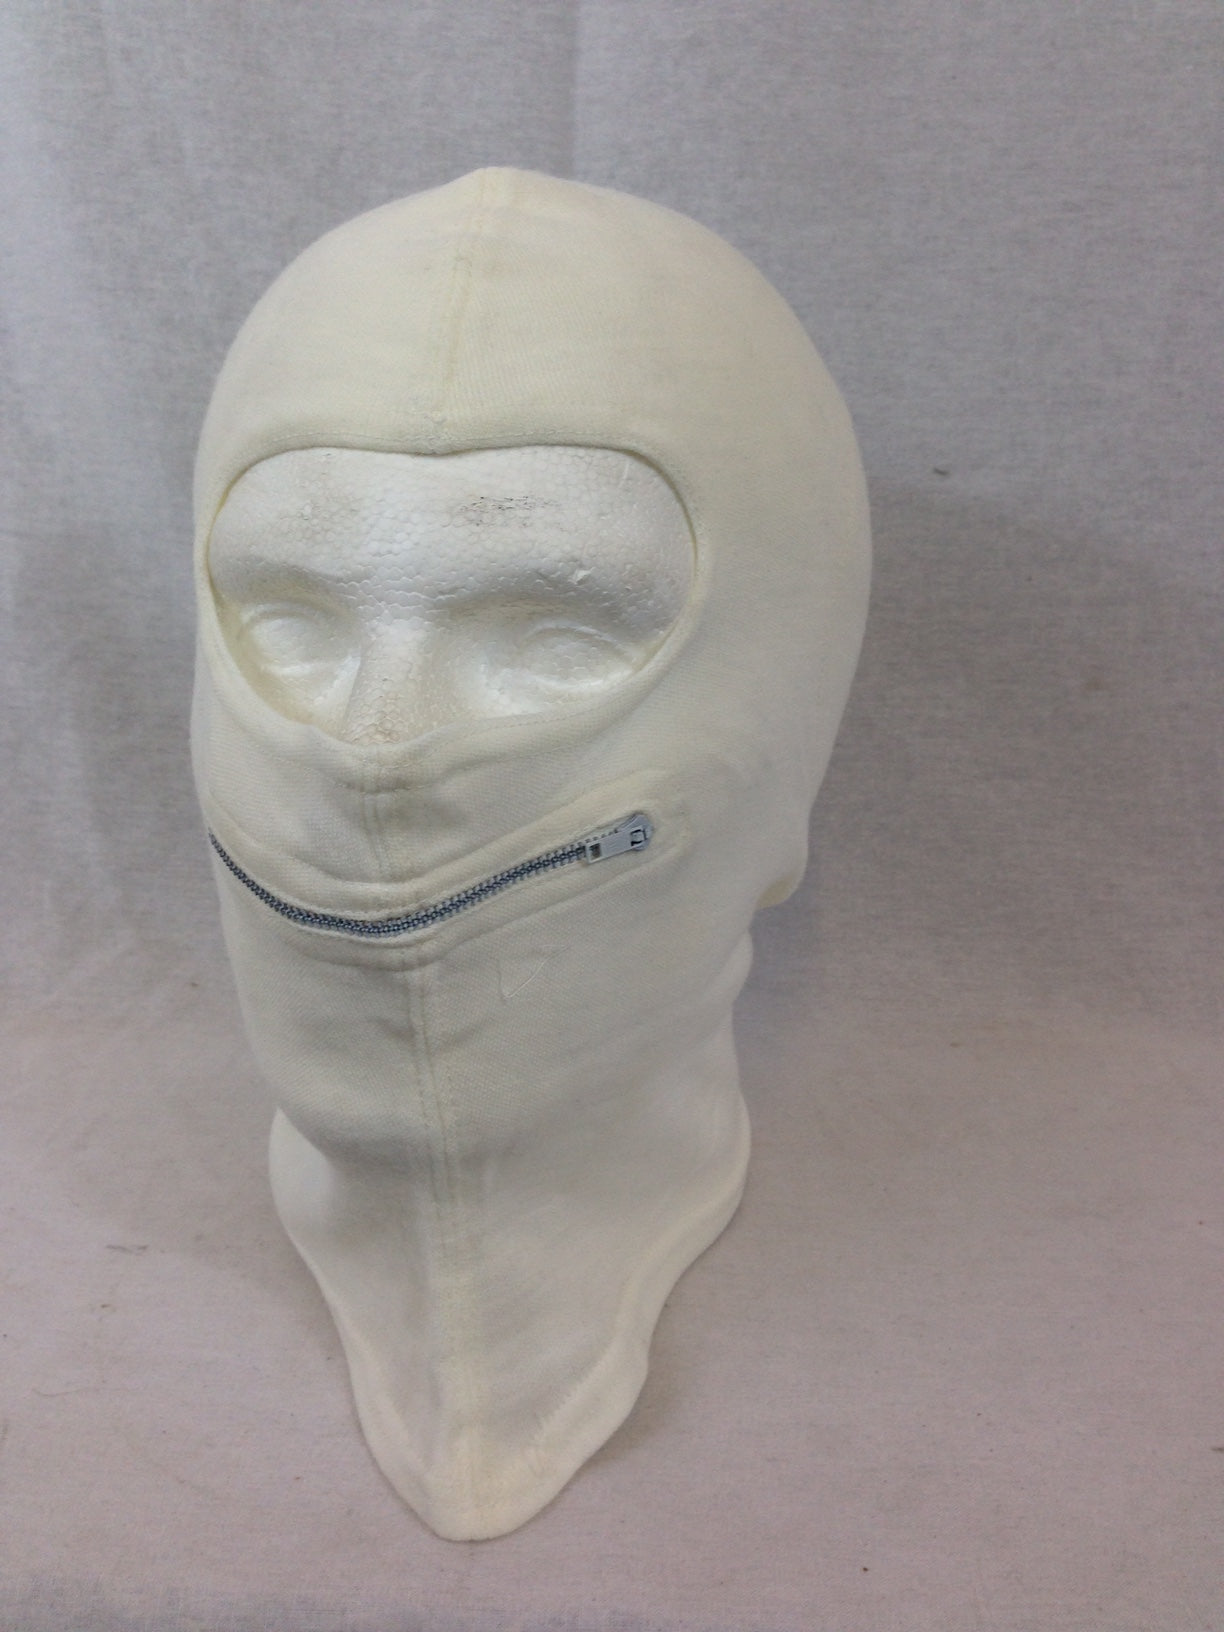 French army surplus snow mask with zip